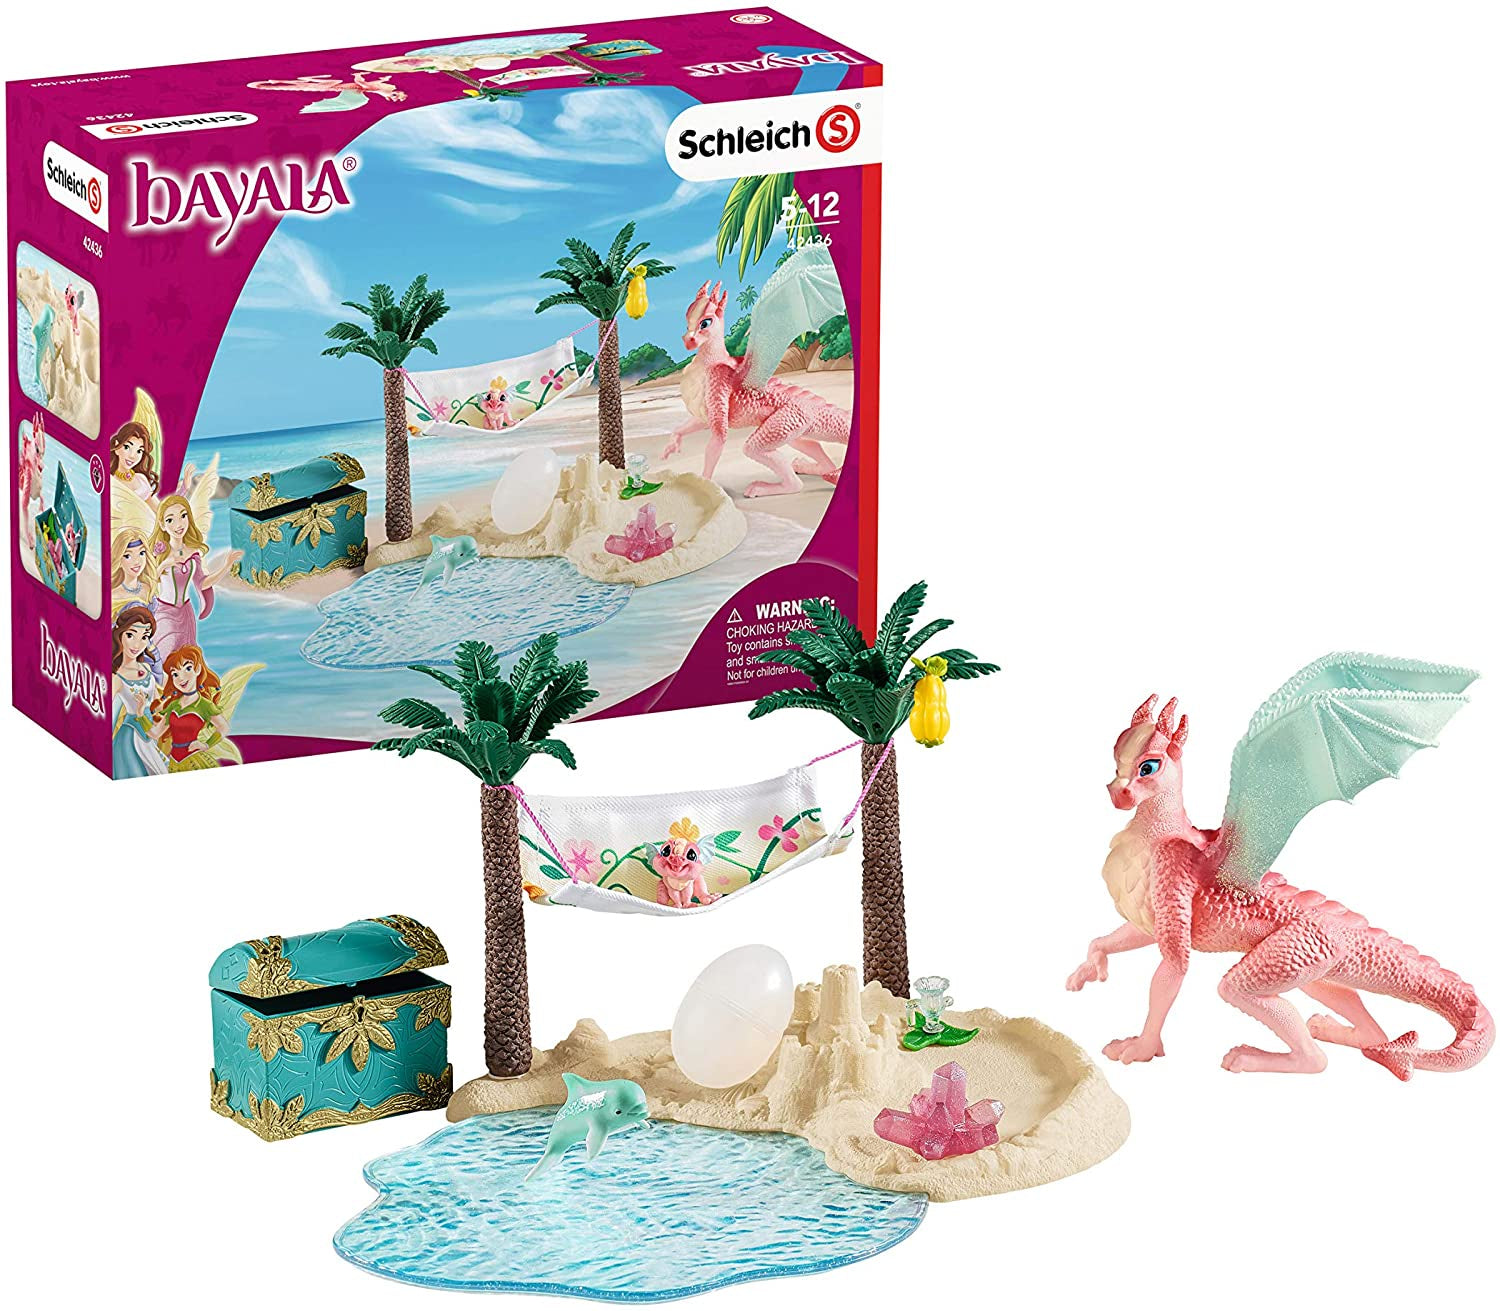 Schleich Bayala 42436 Dragon Island With Treasure And Dragon Figure Pl